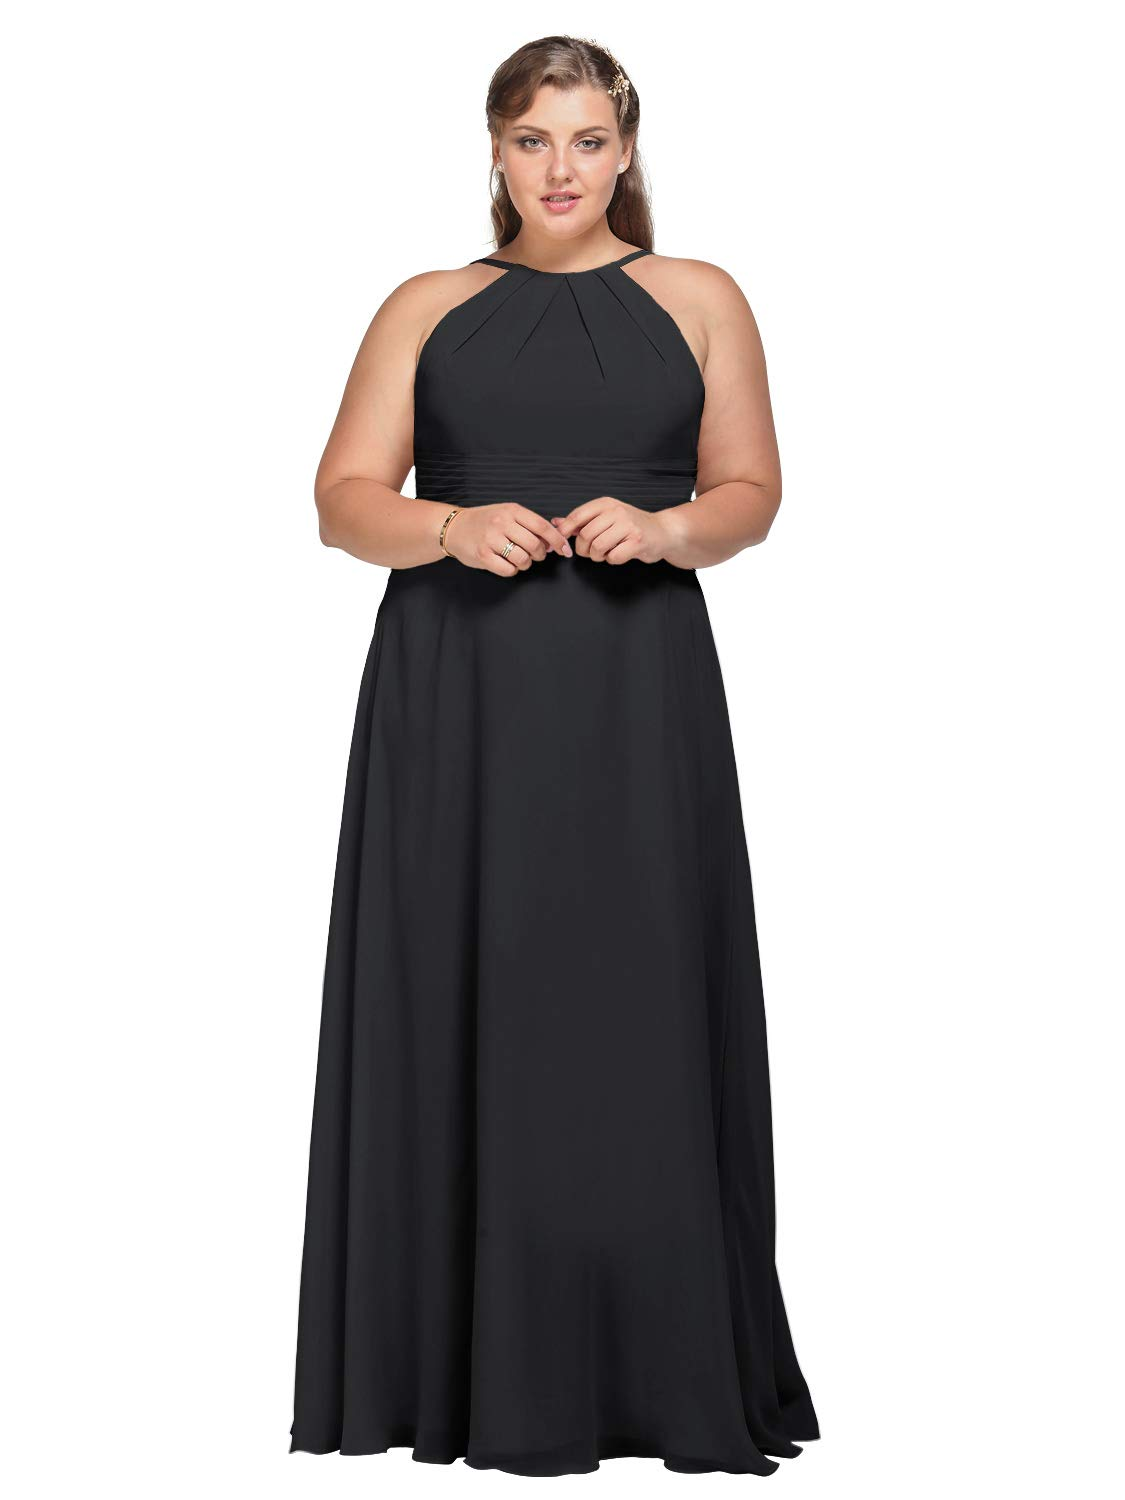 AW Halter Chiffon Bridesmaid Dresses Plus Size Long Prom Formal Wedding Party Dress for Women